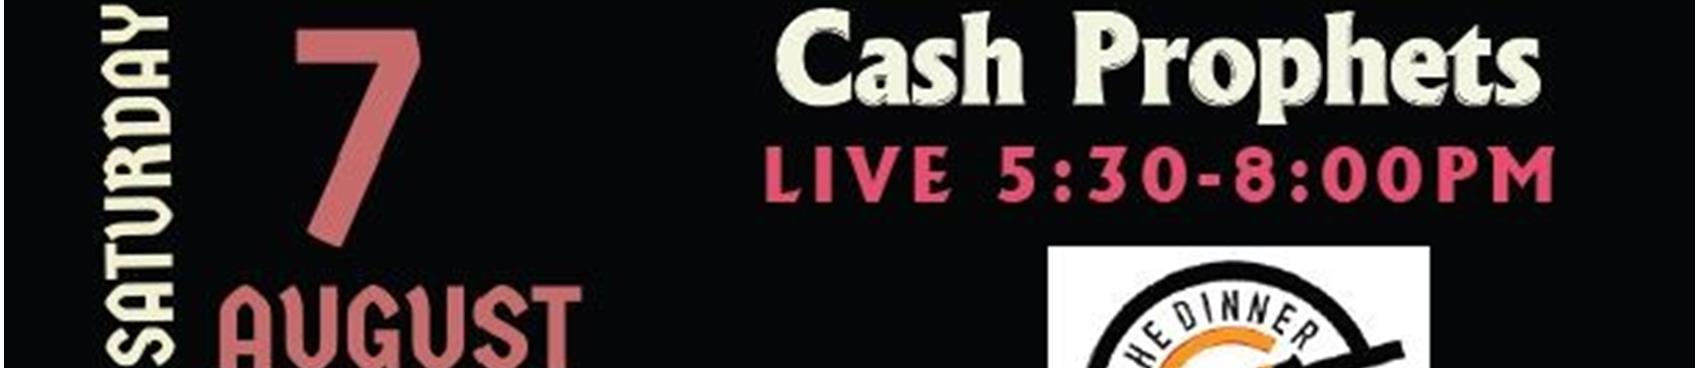 Food, Wine & Live Music by Cash Prophets